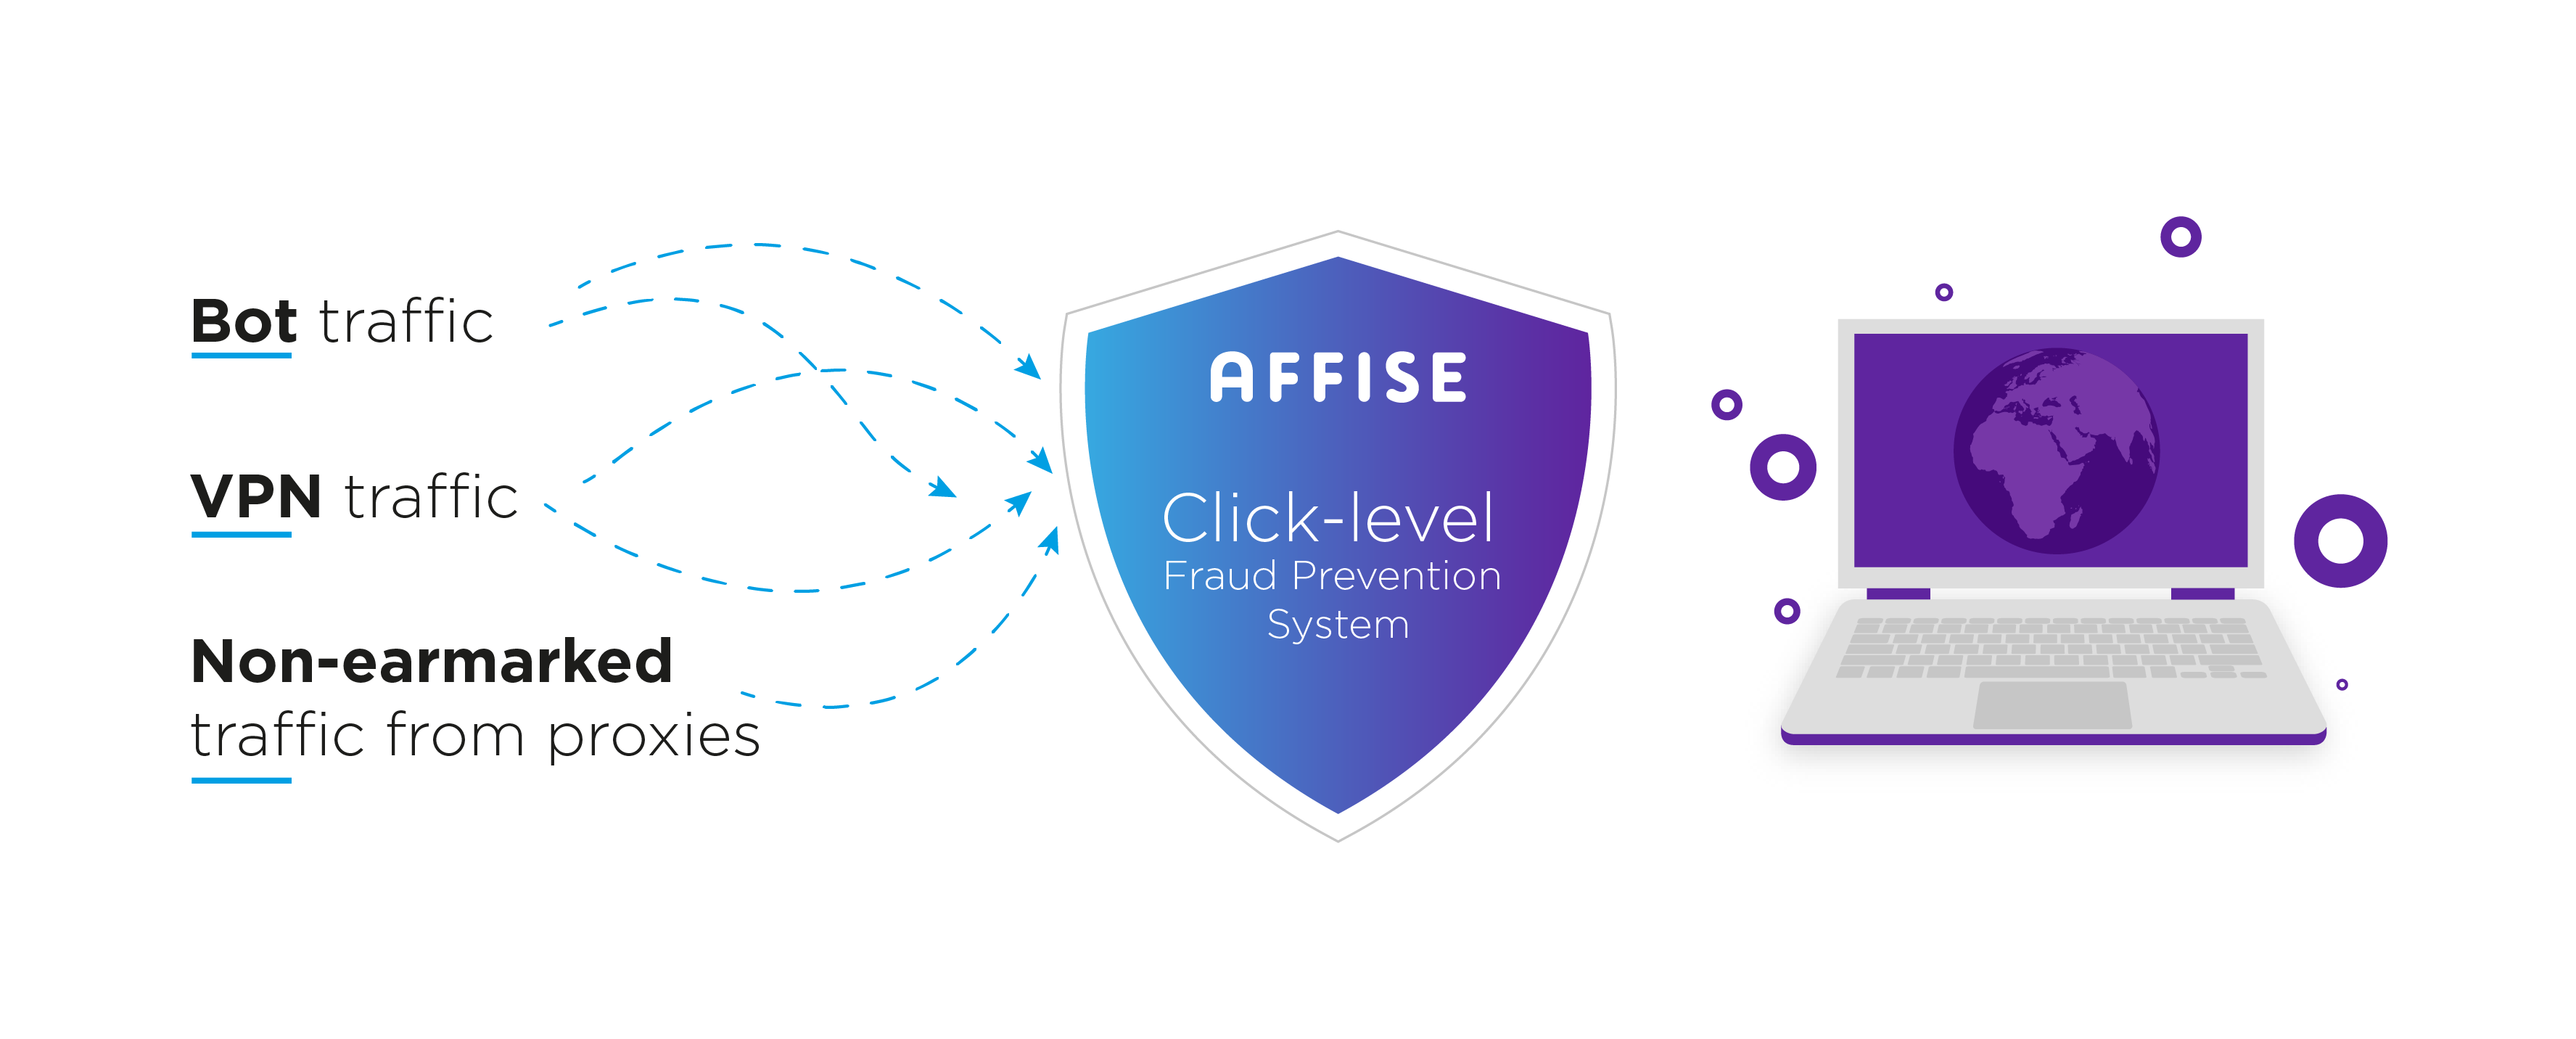 Affise Releases Click-Level Fraud Prevention Tool